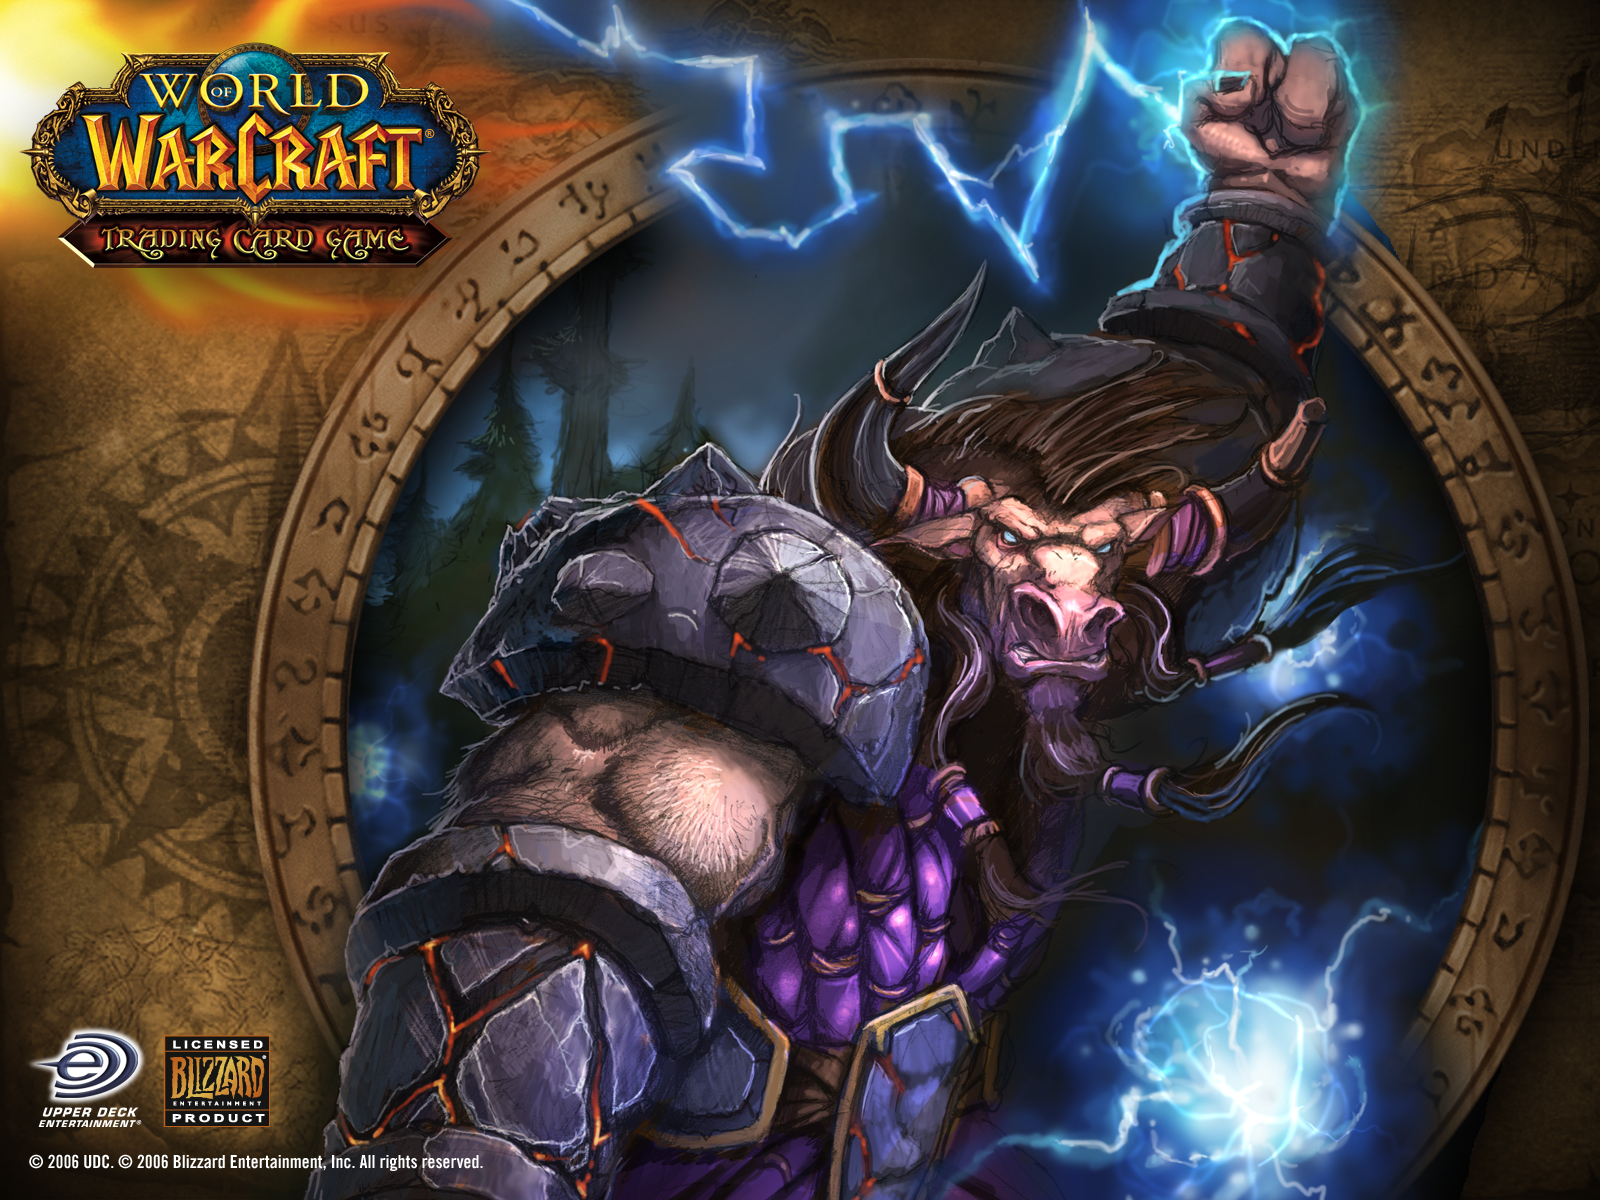 World Of Warcraft Wallpapers   Download World Of Warcraft 31 1600x1200